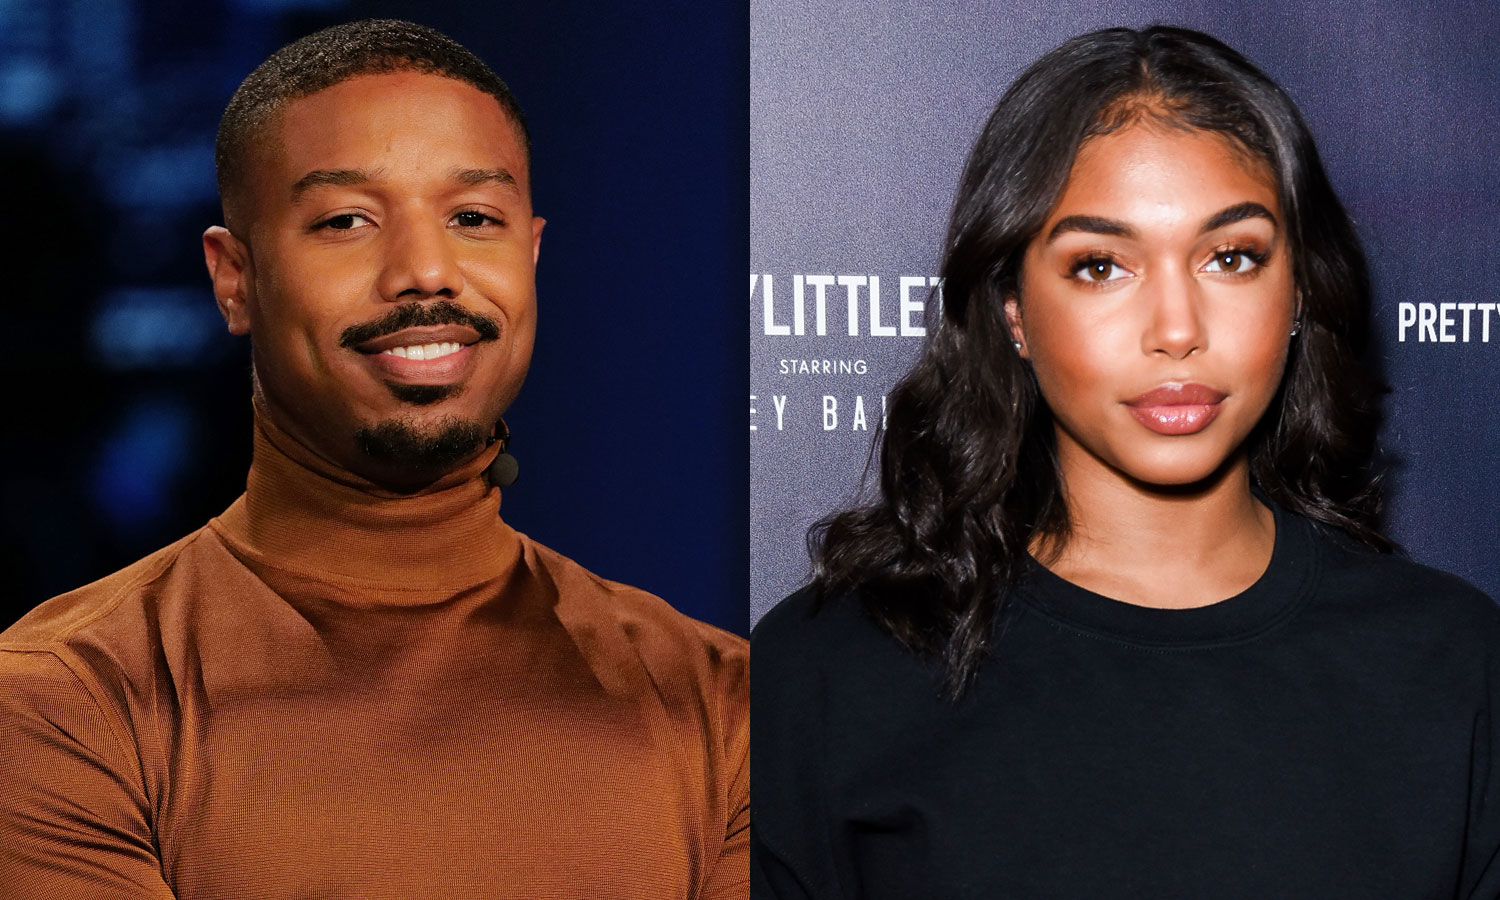 Michael B. Jordan and Lori Harvey confirm their romance with steamy snapshots on Instagram